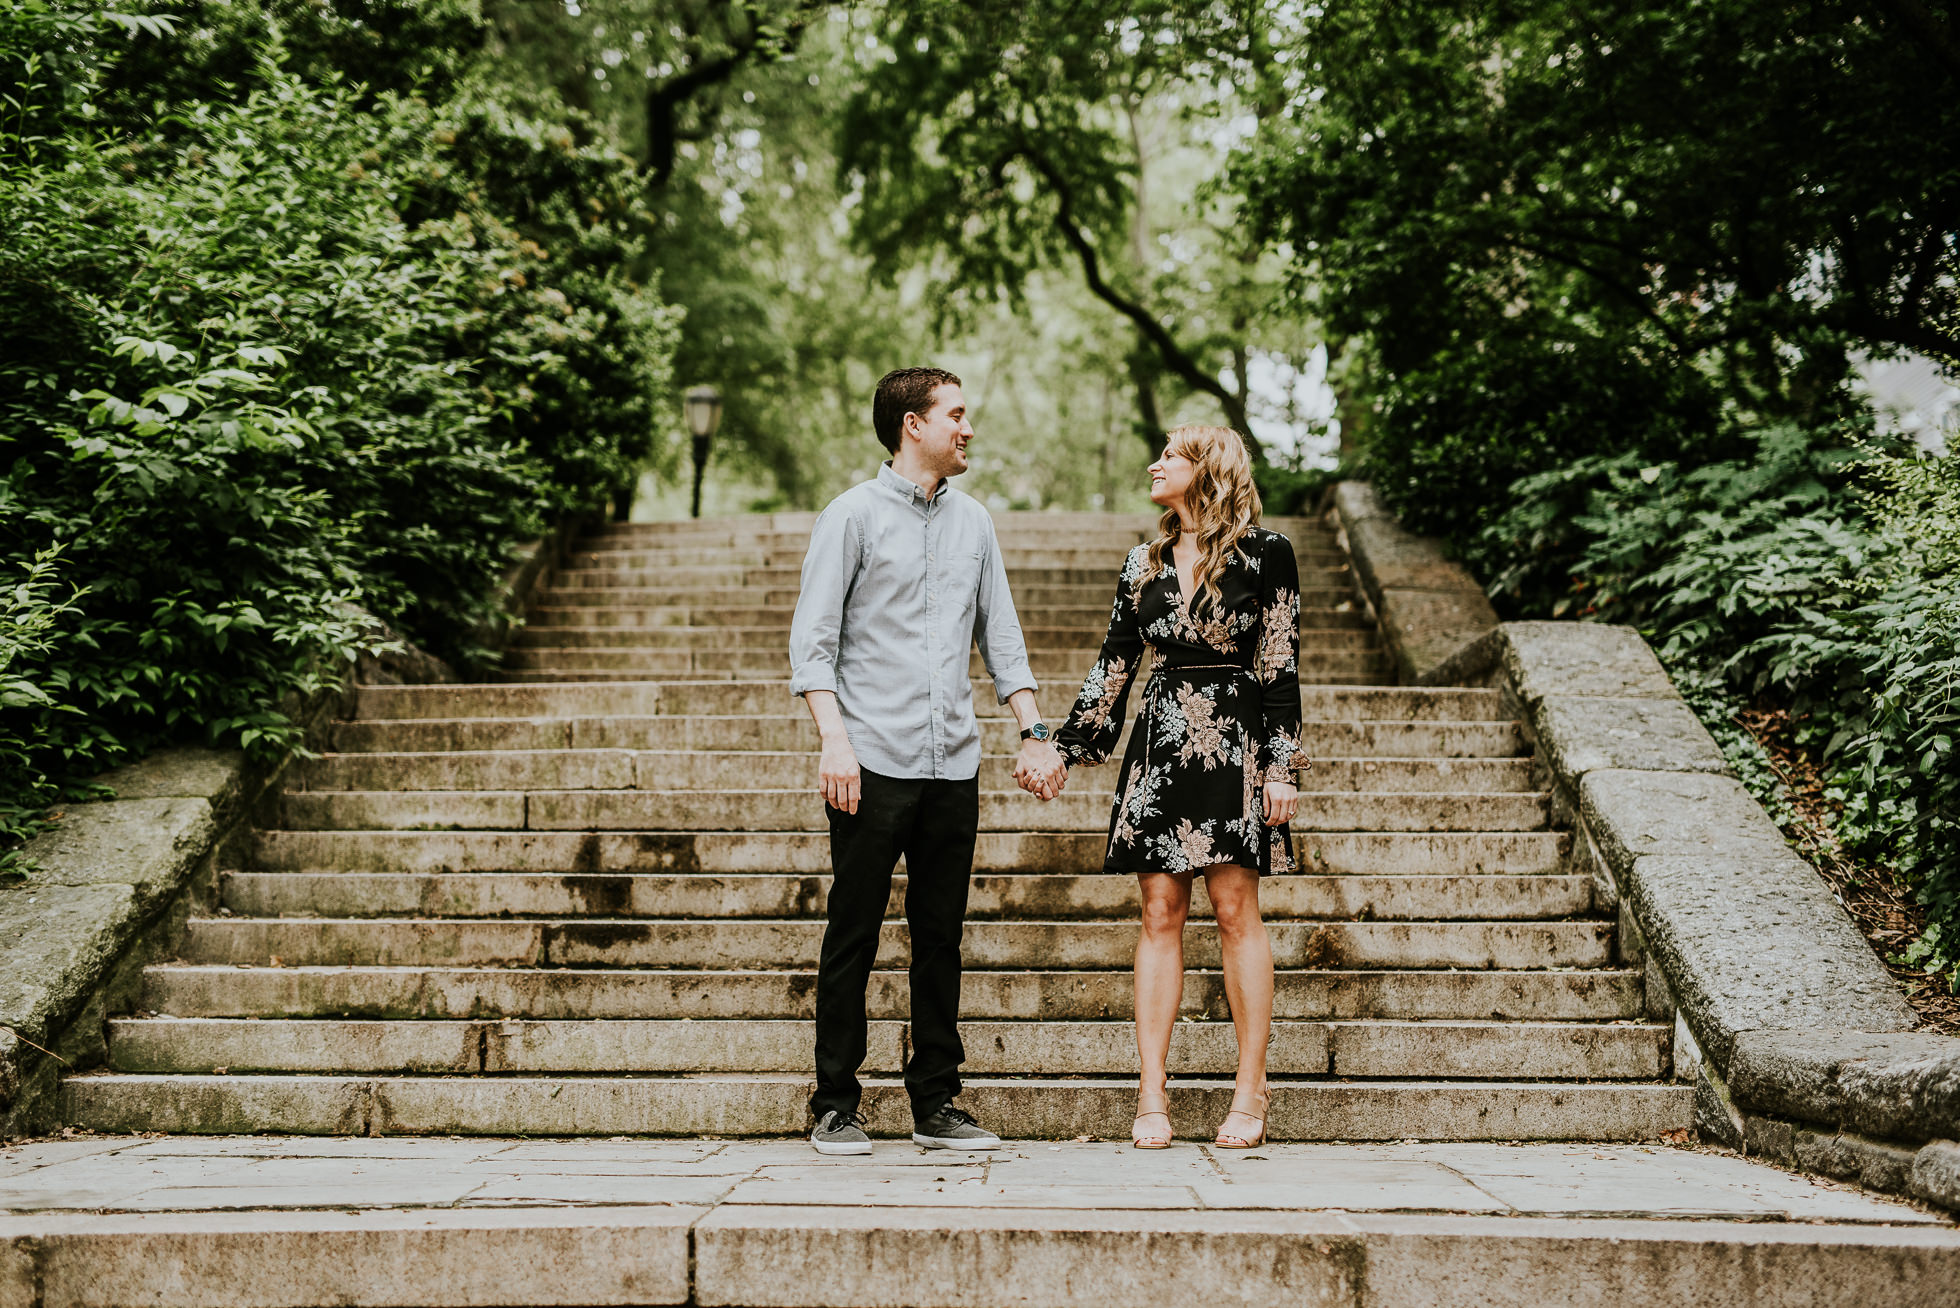 New York City engagement photo spots photographed by Traverse the Tides5